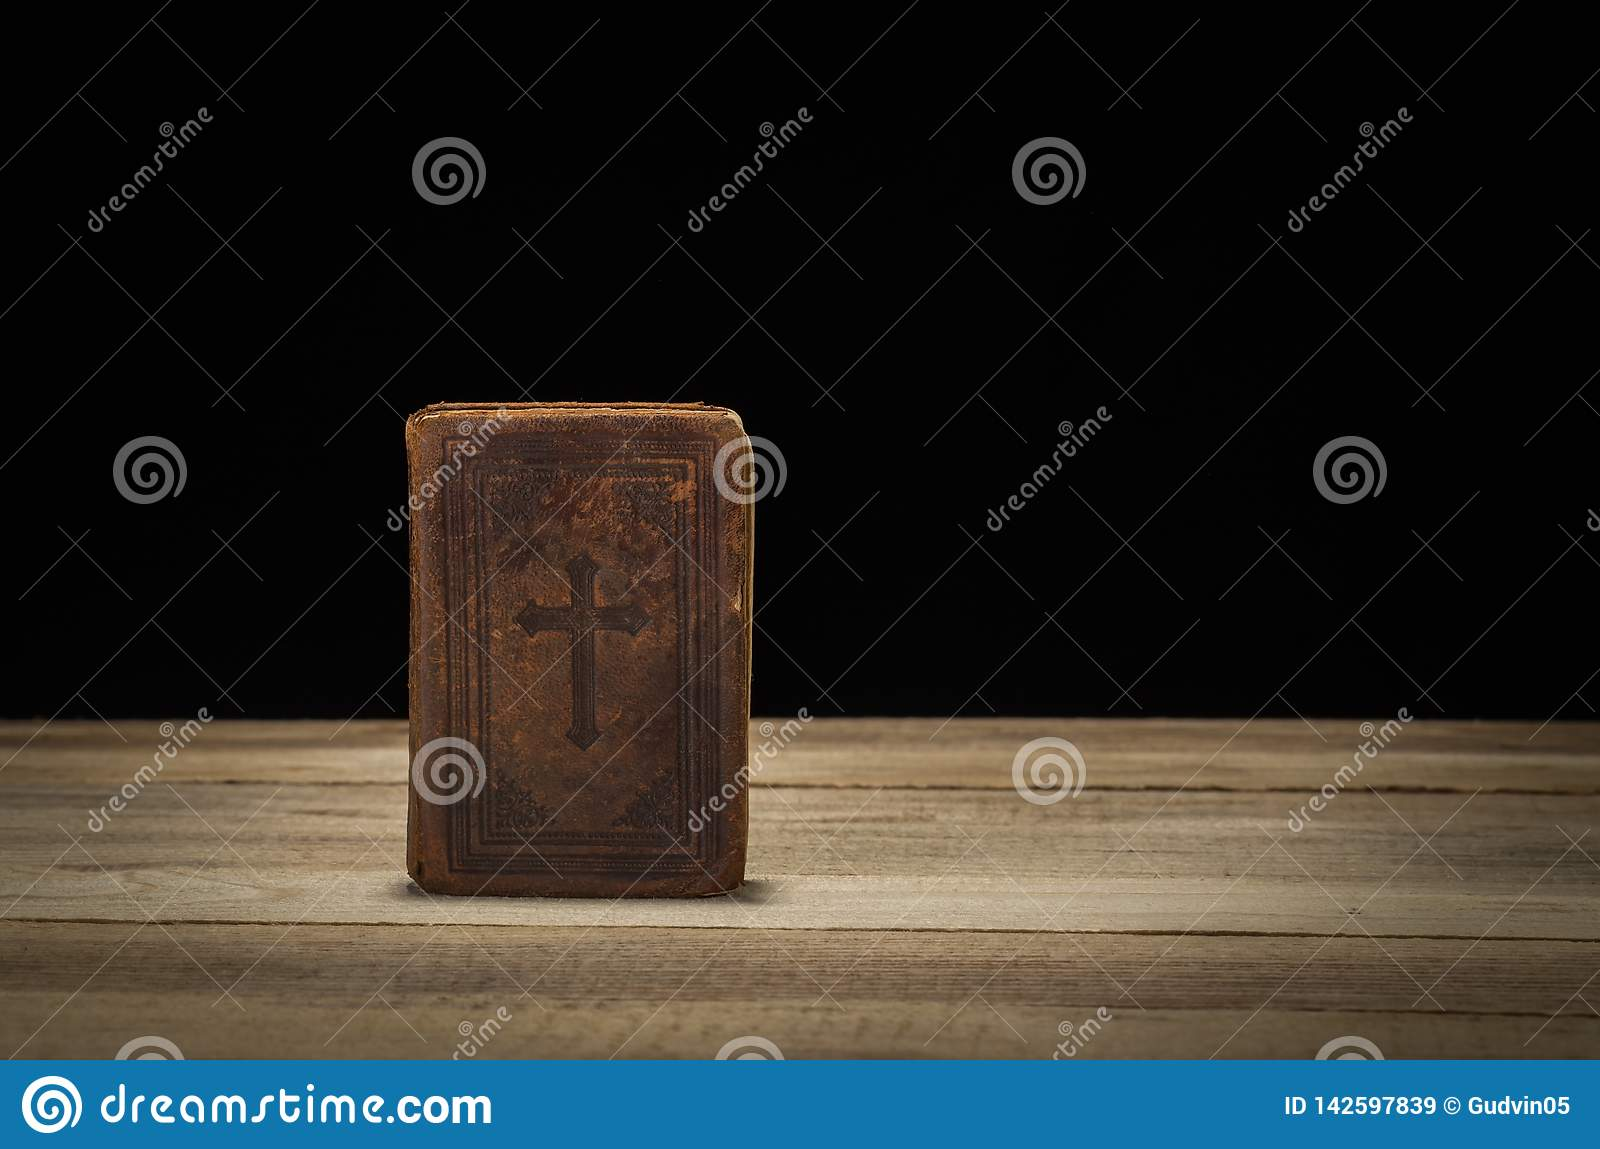 Holy Bible on a wooded table. Black background